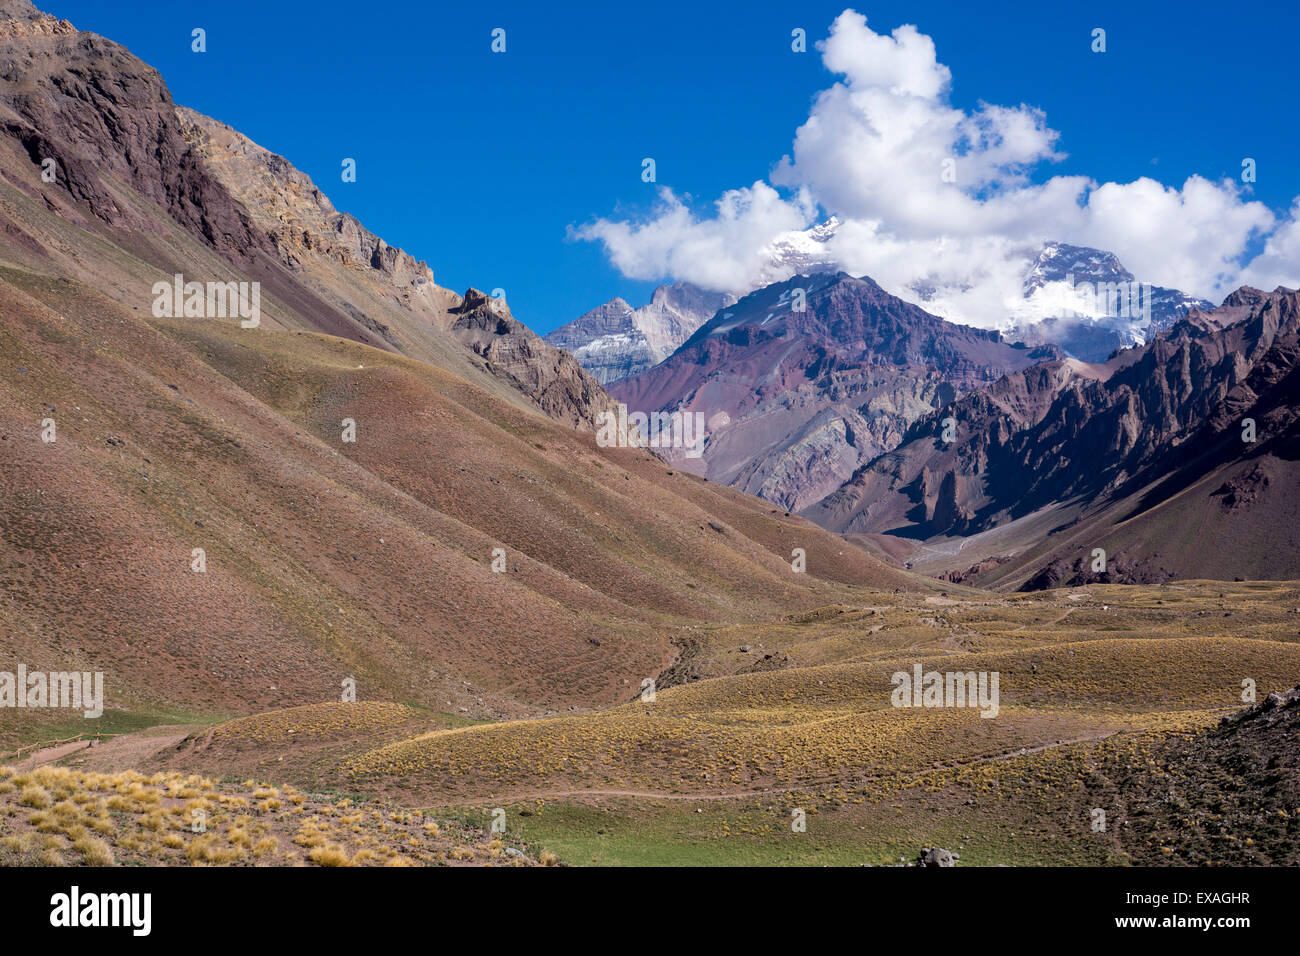 Aconcagua Park, highest mountain in South America, Argentina, South America - Stock Image